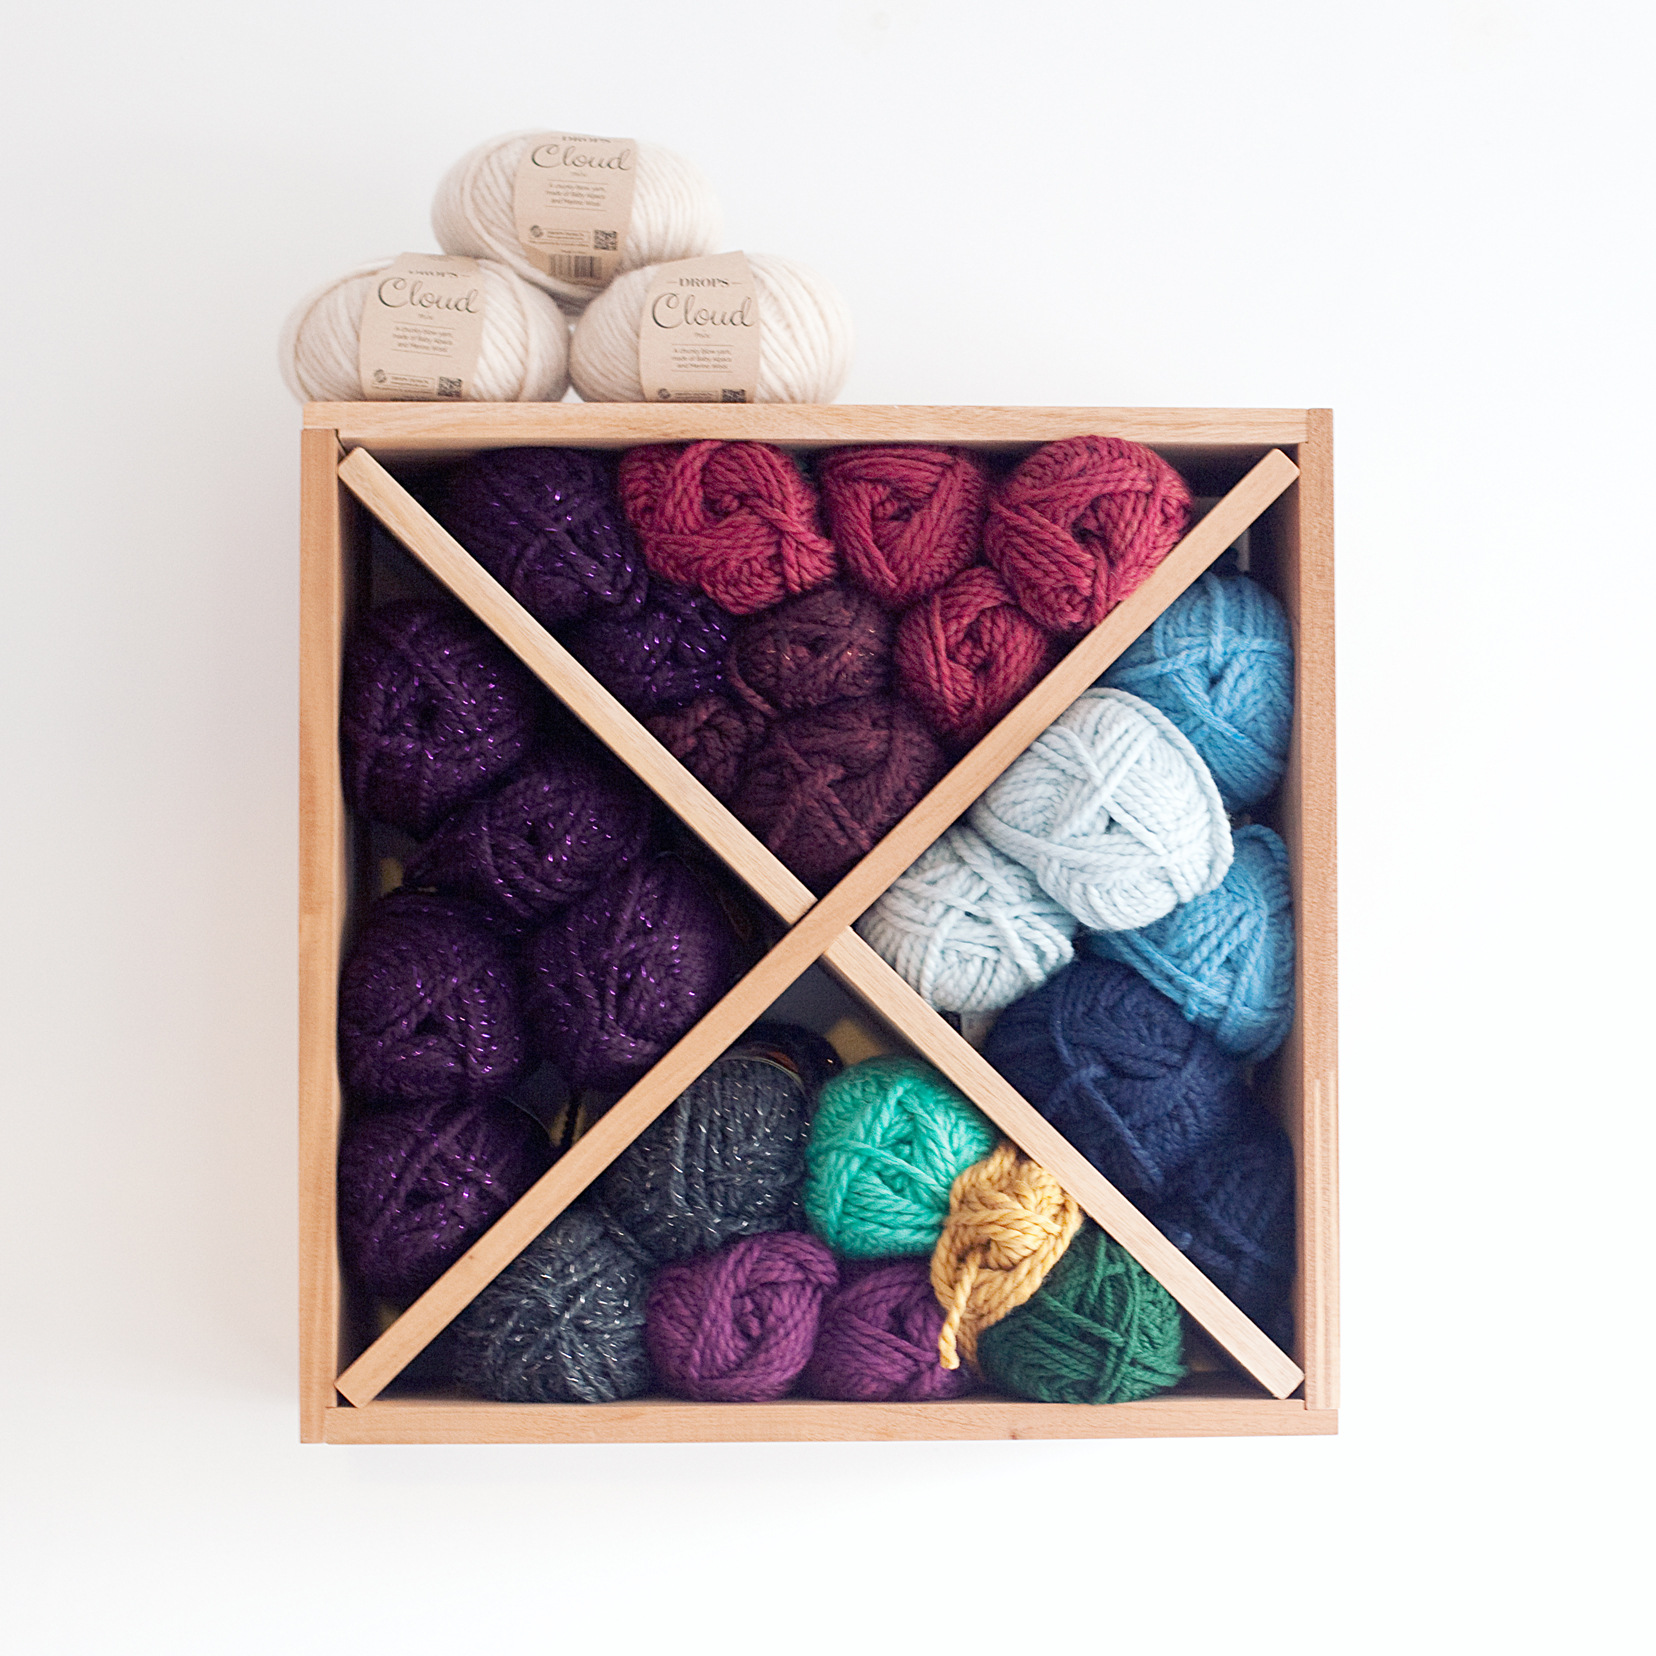 makers-in-the-raw-knitatude-68694w